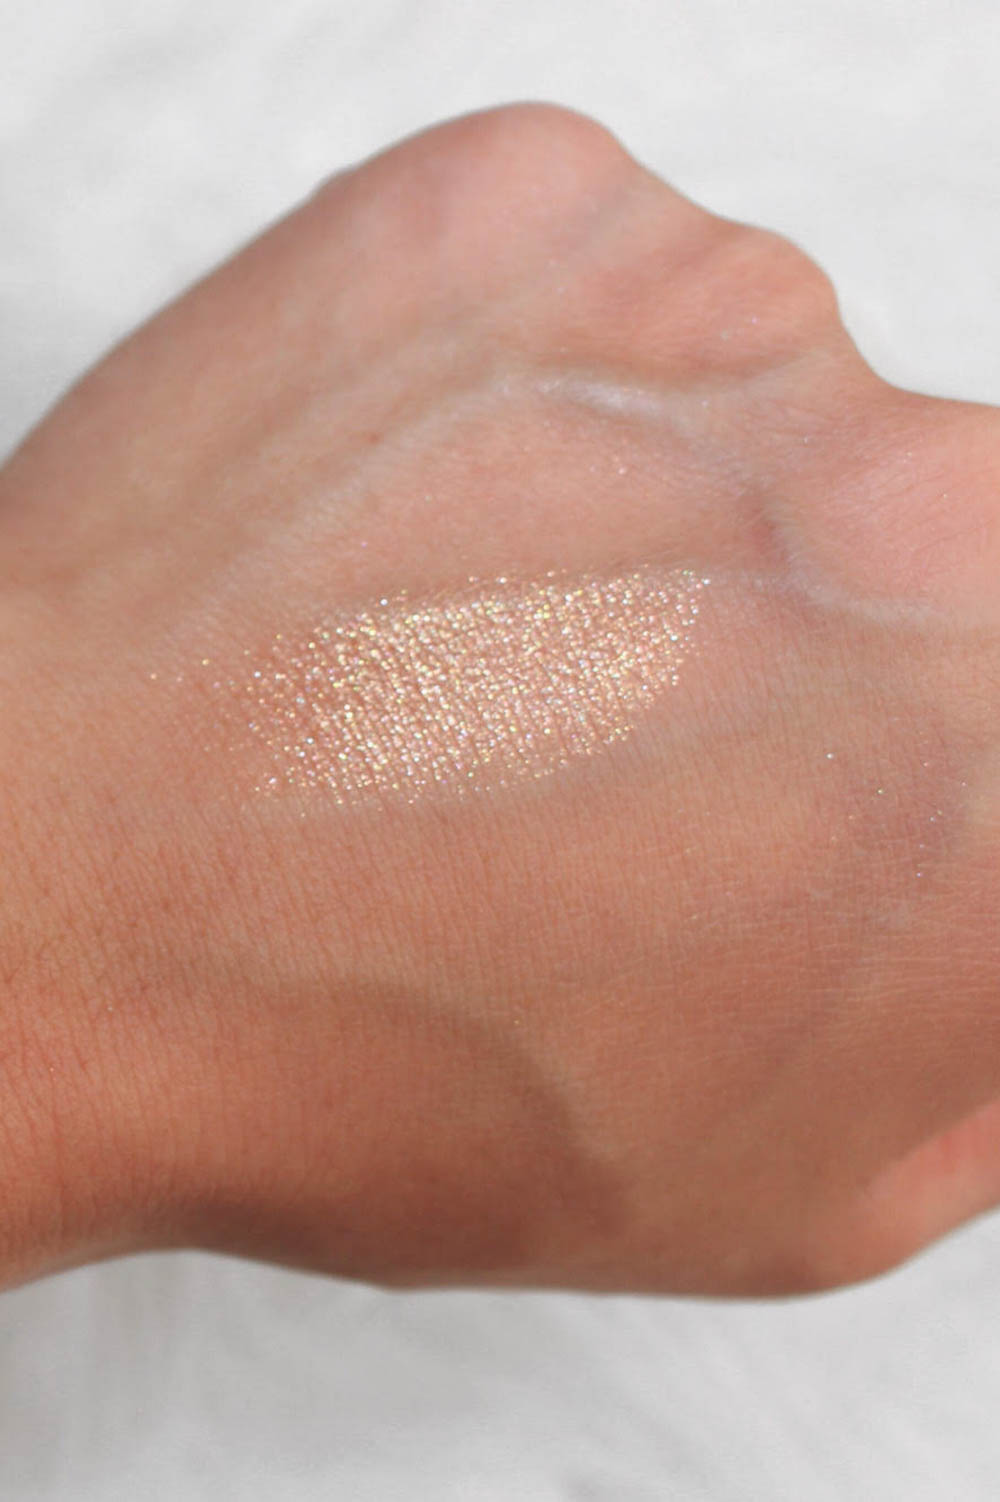 Artist Couture DIAMOND GLOW POWDER Conceited | 5 holiday party glitter makeup products | The Beauty List | The Beauty Vanity